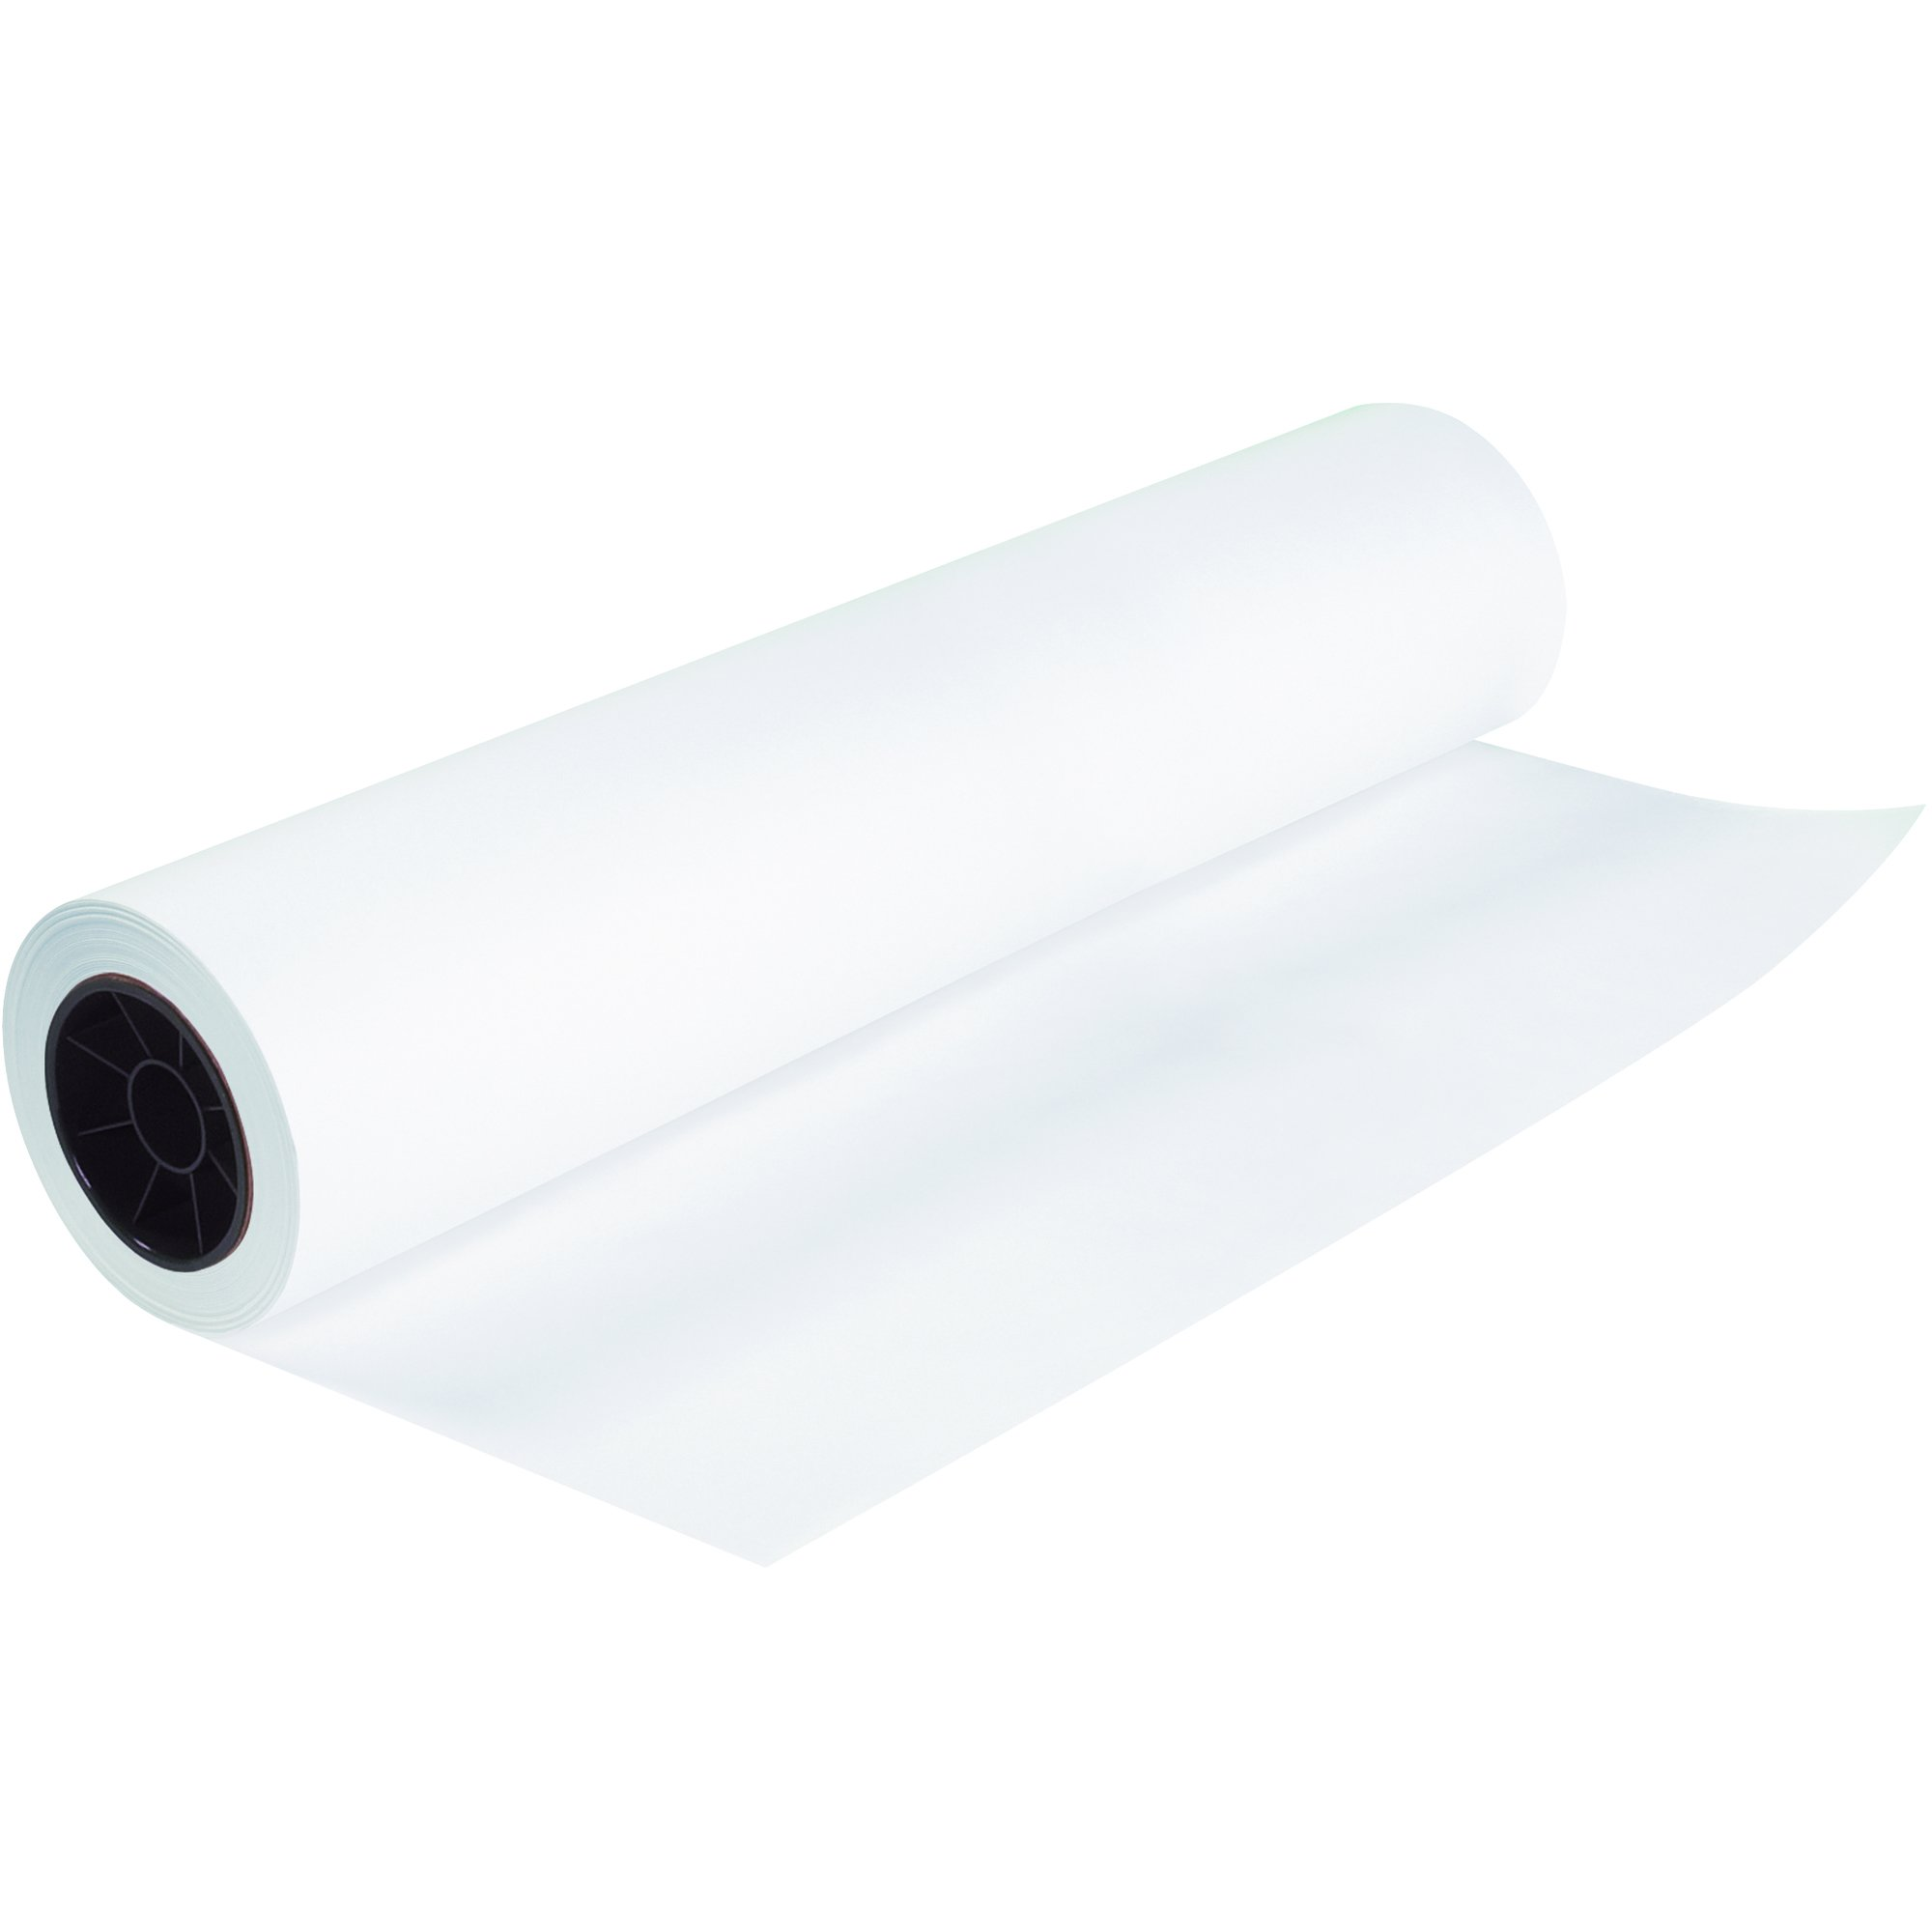 BOX USA BTYR30150WH Tyvek Roll, 30'' x 150', White (Pack of 1) by BOX USA